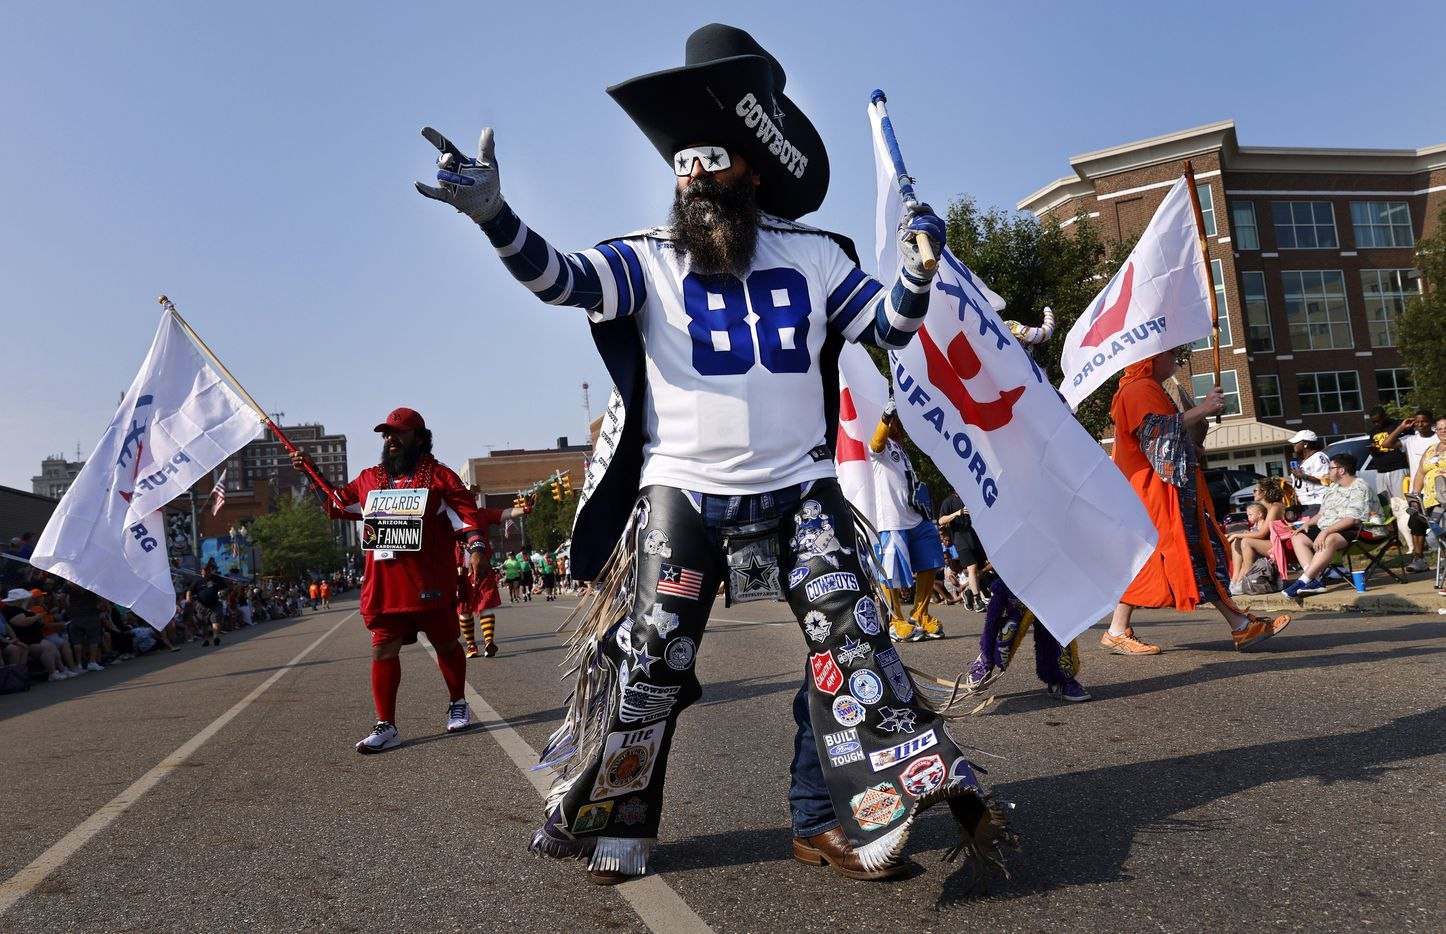 Dallas Cowboys fan Shane Wentz of Grove City, Pennsylvania marches with other NFL mascots in the Canton Repository Grand Parade in downtown Canton, Ohio, Saturday, August 7, 2021. The Pro Football Hall of Fame parade honored newly elected and former members of the Hall, including newcomers and former Dallas Cowboys players Cliff Harris, Drew Pearson and head coach Jimmy Johnson. (Tom Fox/The Dallas Morning News)